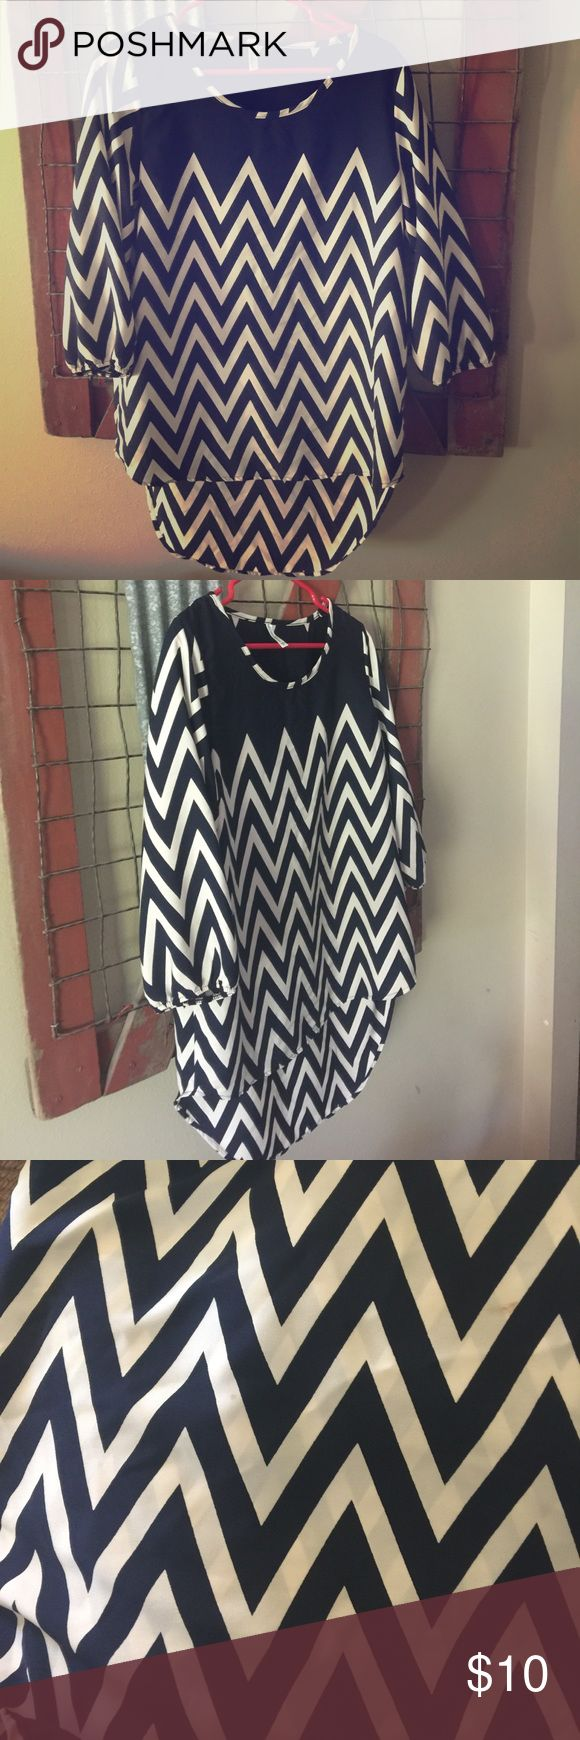 Chevron blouse, navy and white. M/L Boutique navy and white chevron blouse. Longer in the back, very flattering loose fit! 2 very small blemishes, see pic for example Tops Blouses